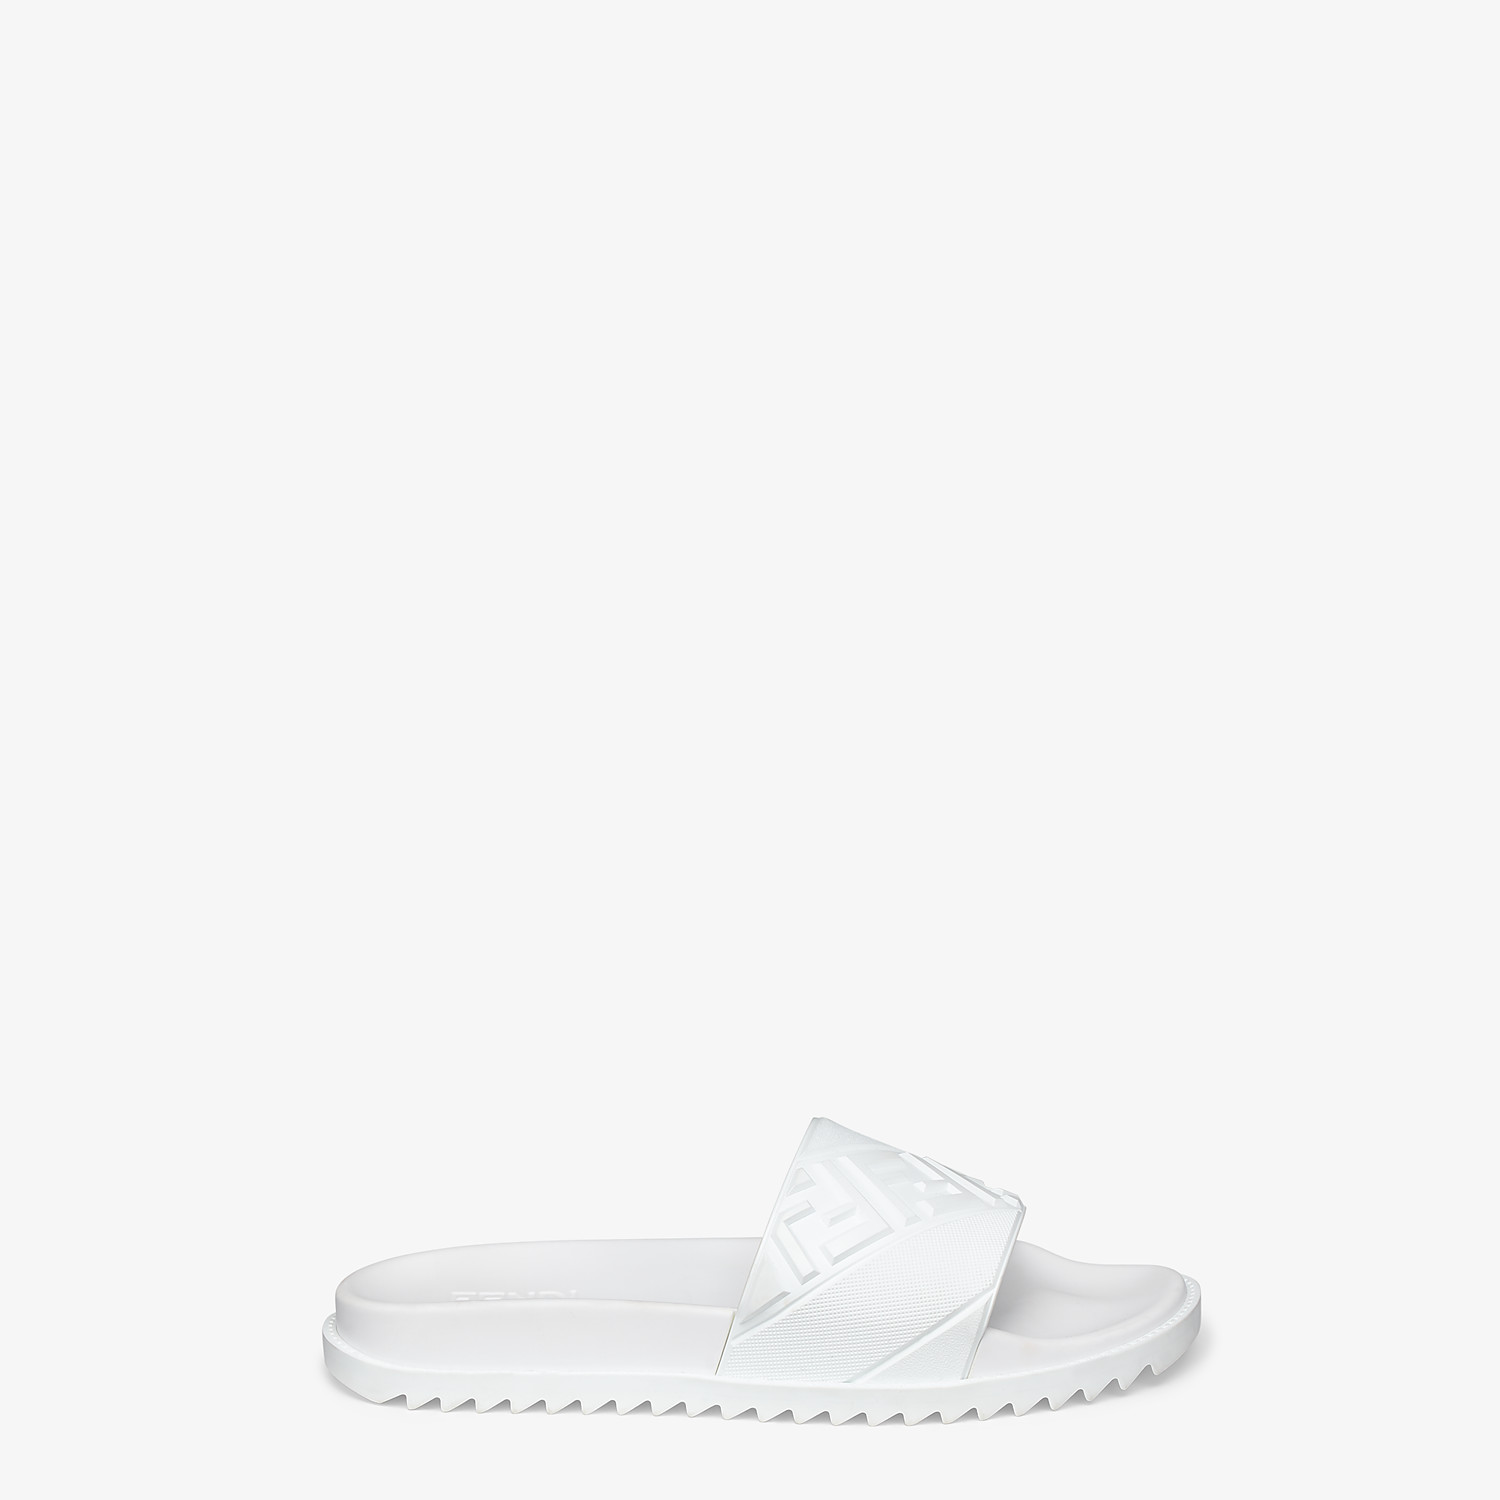 FENDI SLIDES - White rubber footbed - view 1 detail